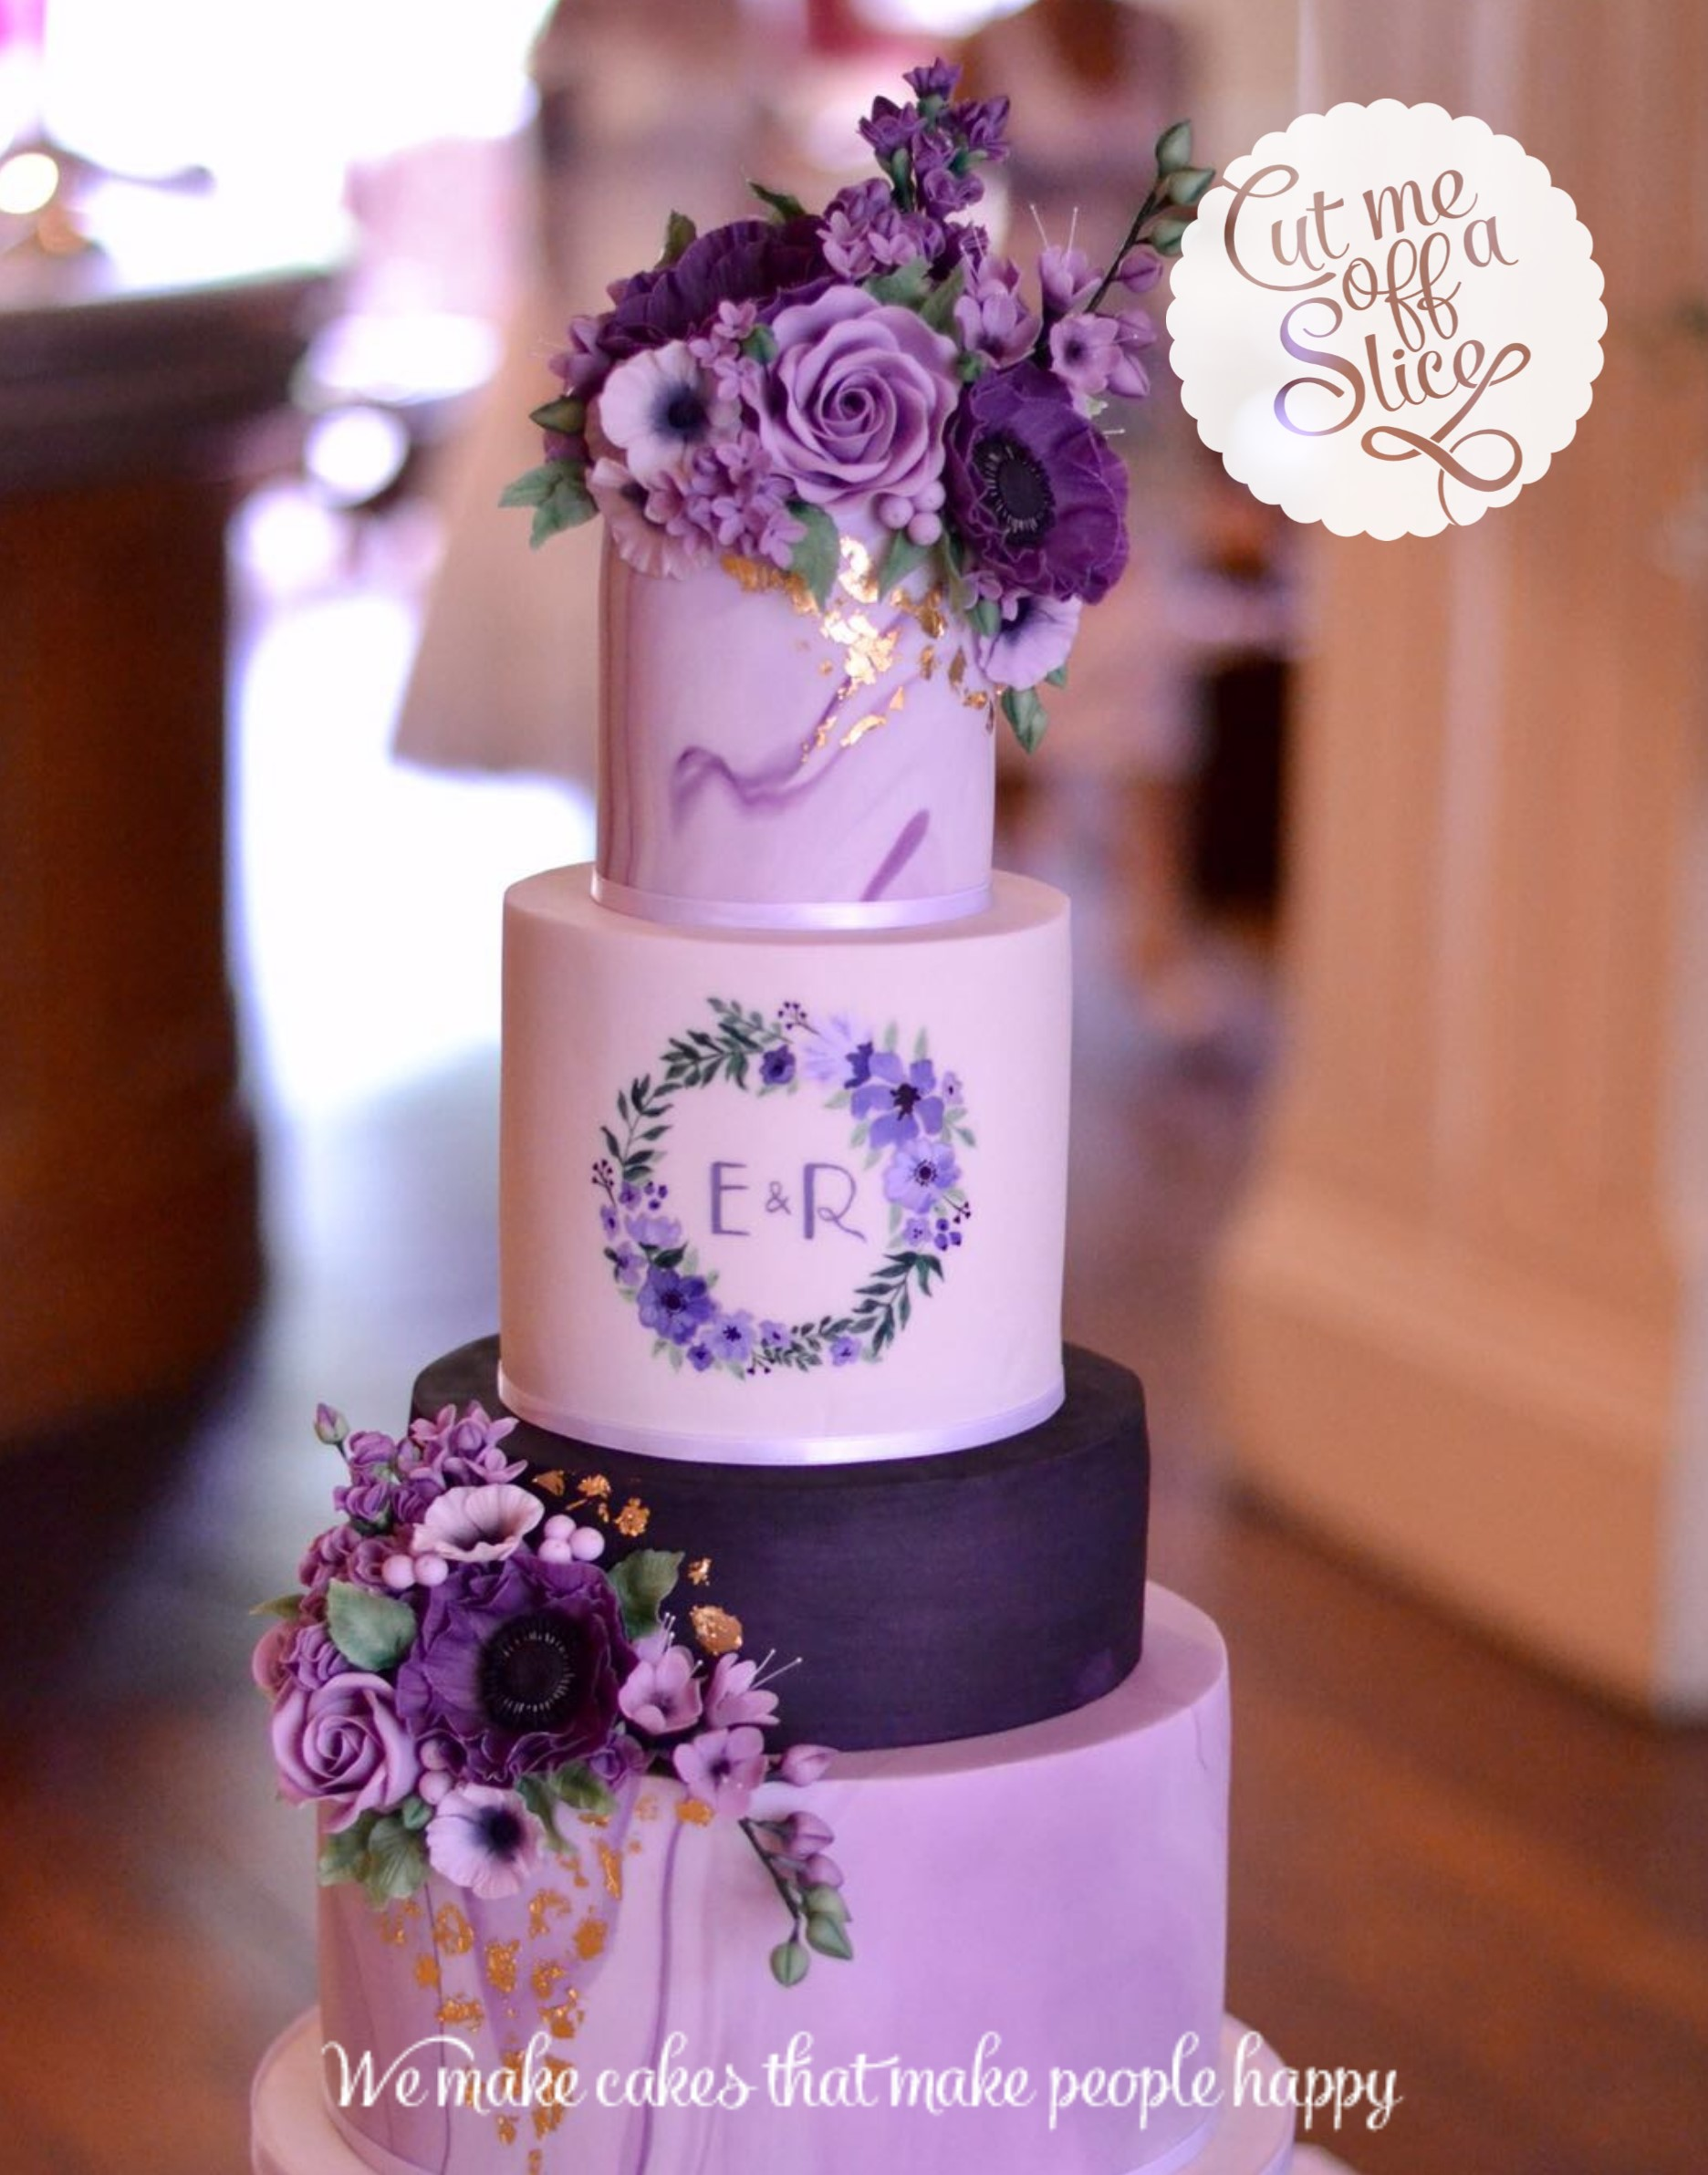 Bespoke wedding cake by Cut Me f A Slice